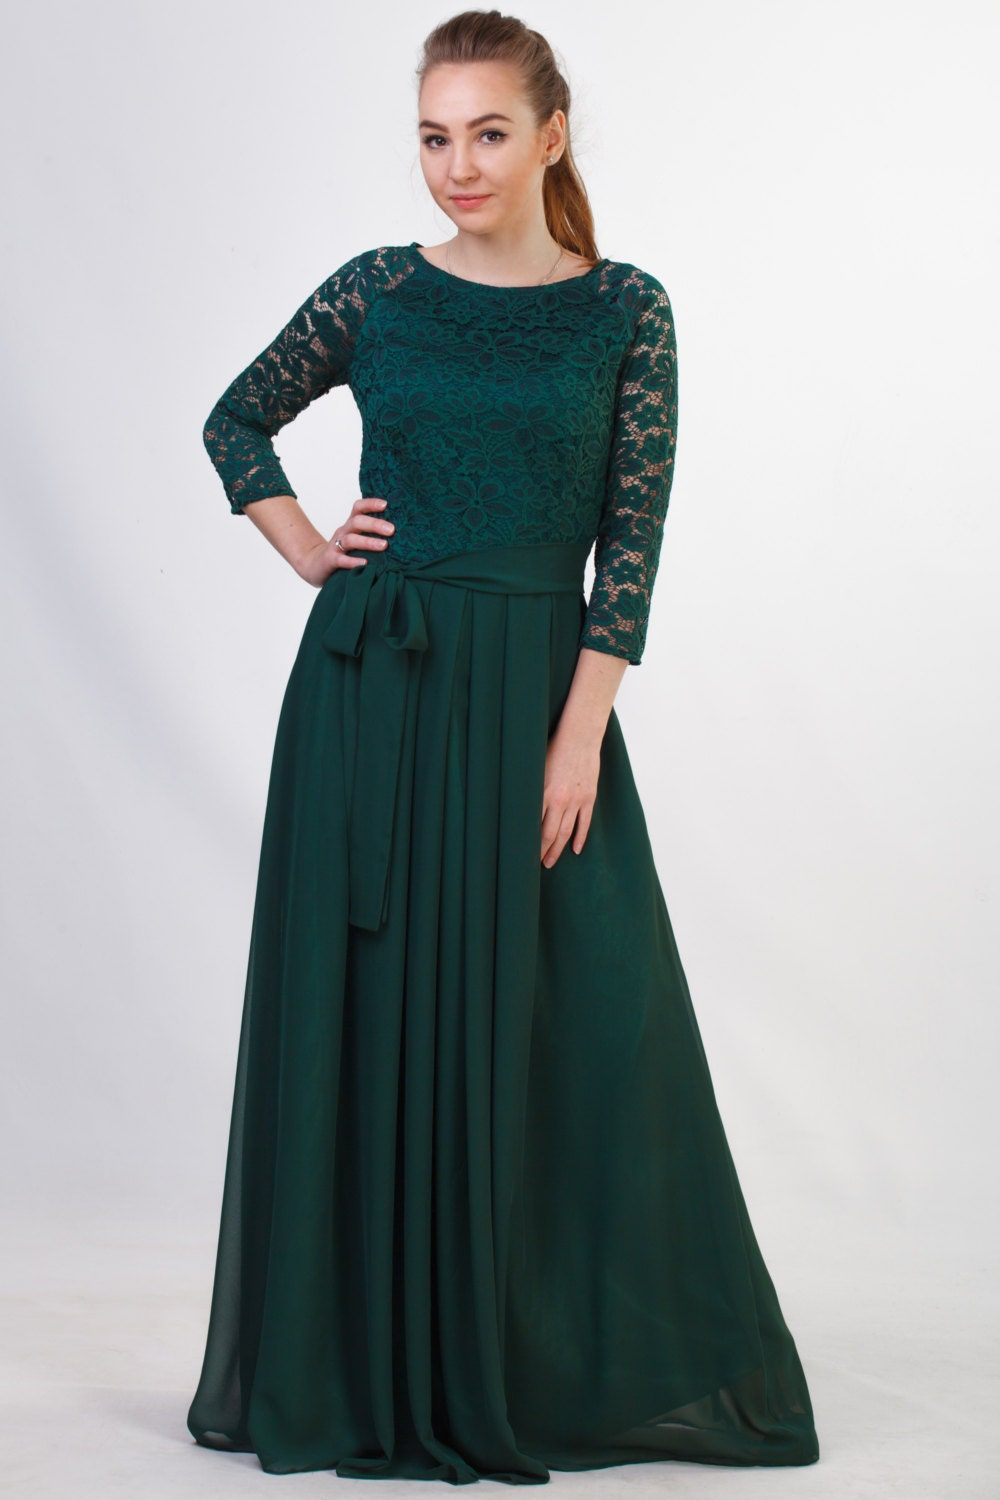 Dark green bridesmaid dress lace green bridesmaid dress with description lace dark green dress ombrellifo Choice Image